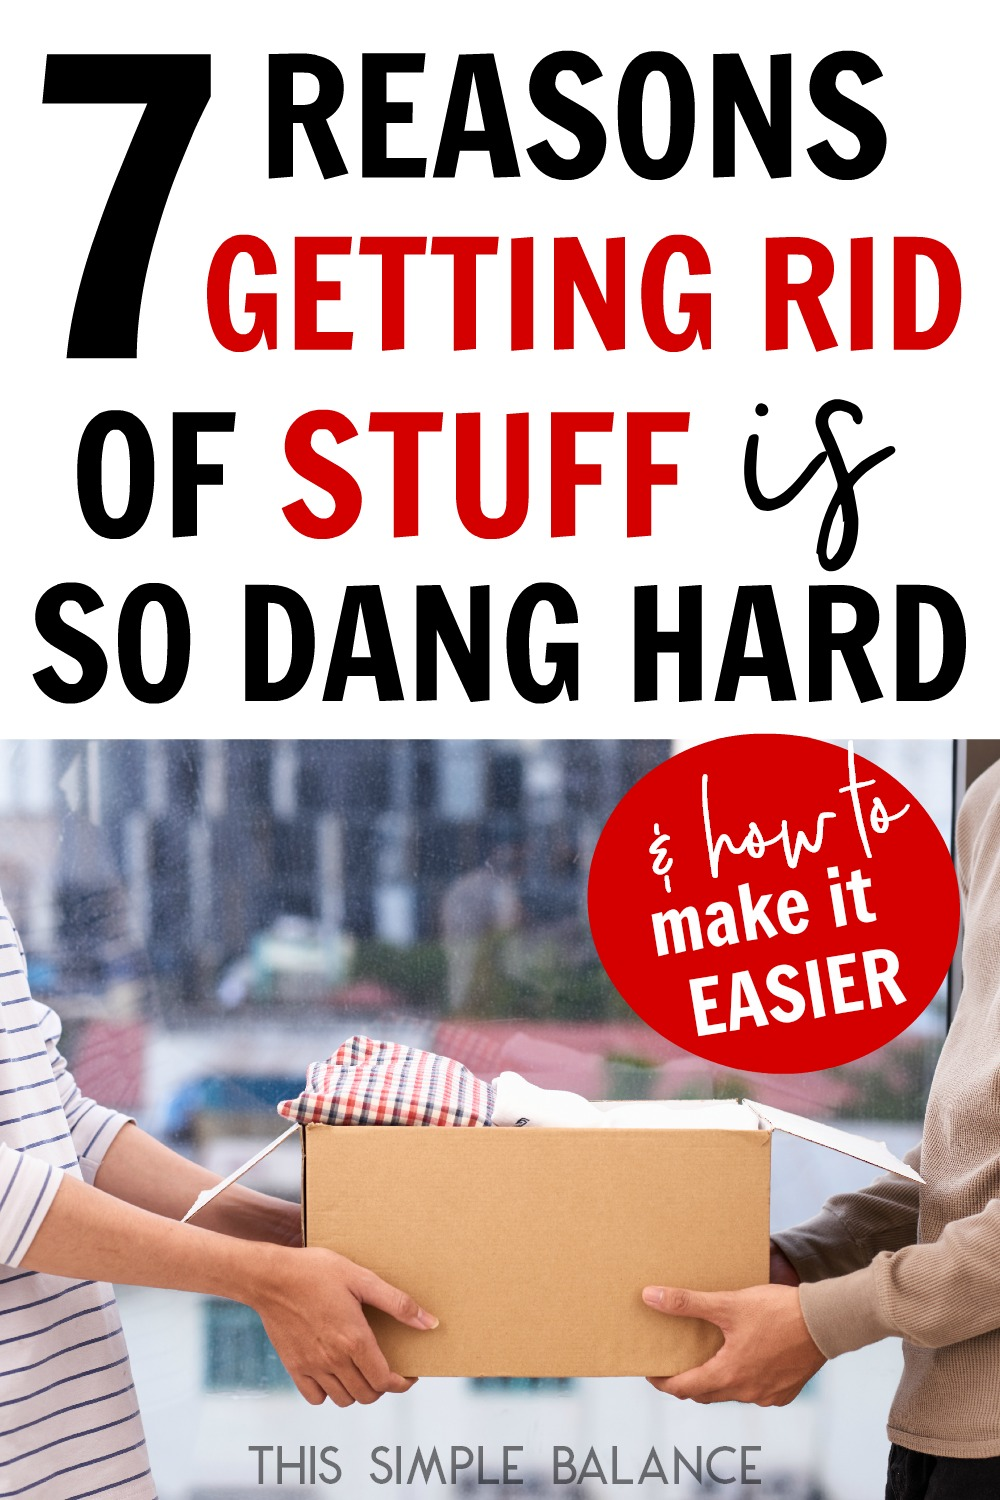 Decluttering Tips (How to Let Go of Stuff) Do you have a really hard time getting rid of stuff? Knowing why it's hard helps SO much. Get tips for each specific reason so you can FINALLY make decluttering progress.